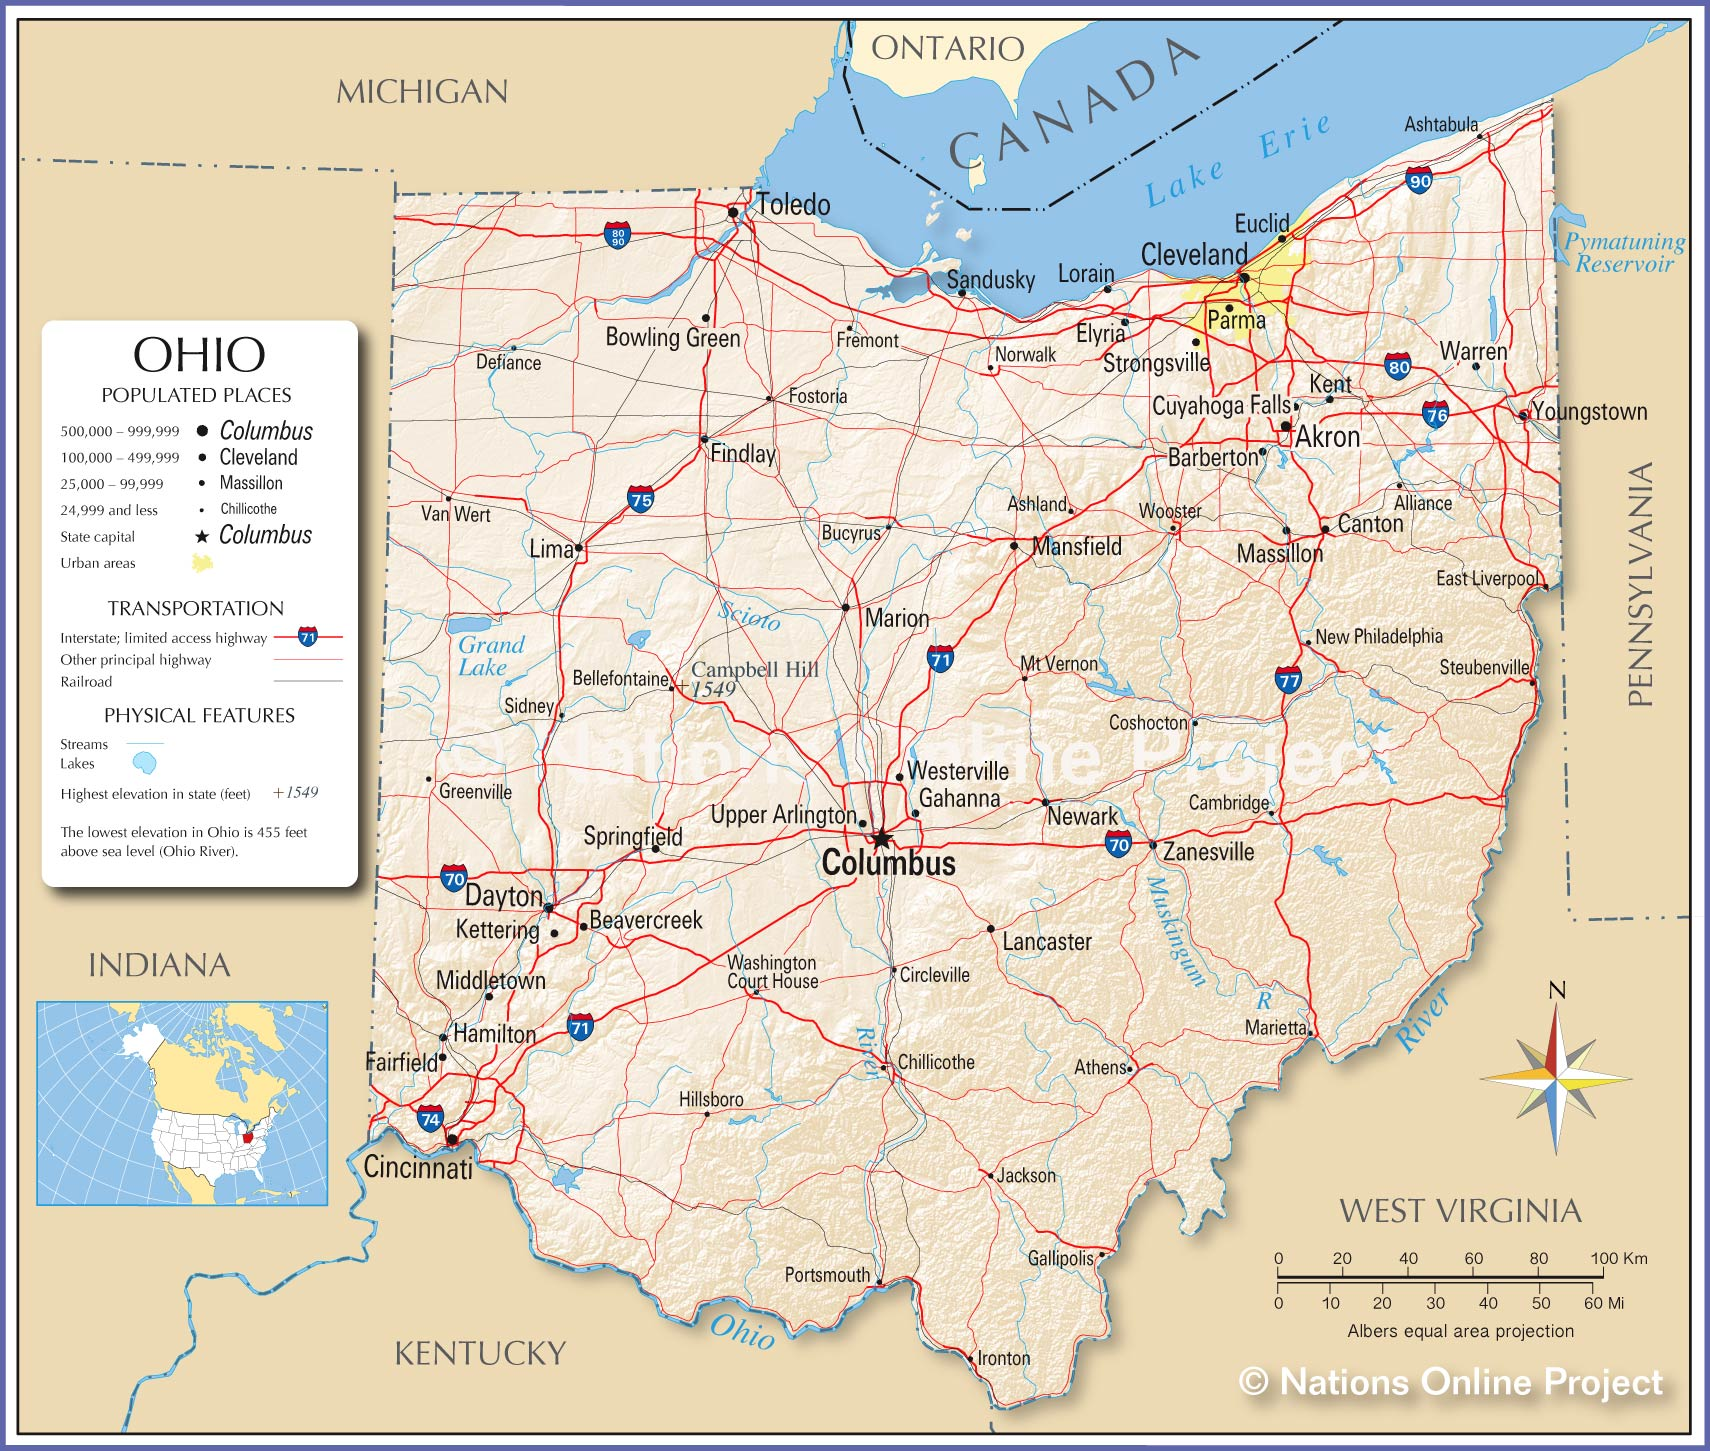 Reference Map Of Ohio USA Nations Online Project - Ohio map usa